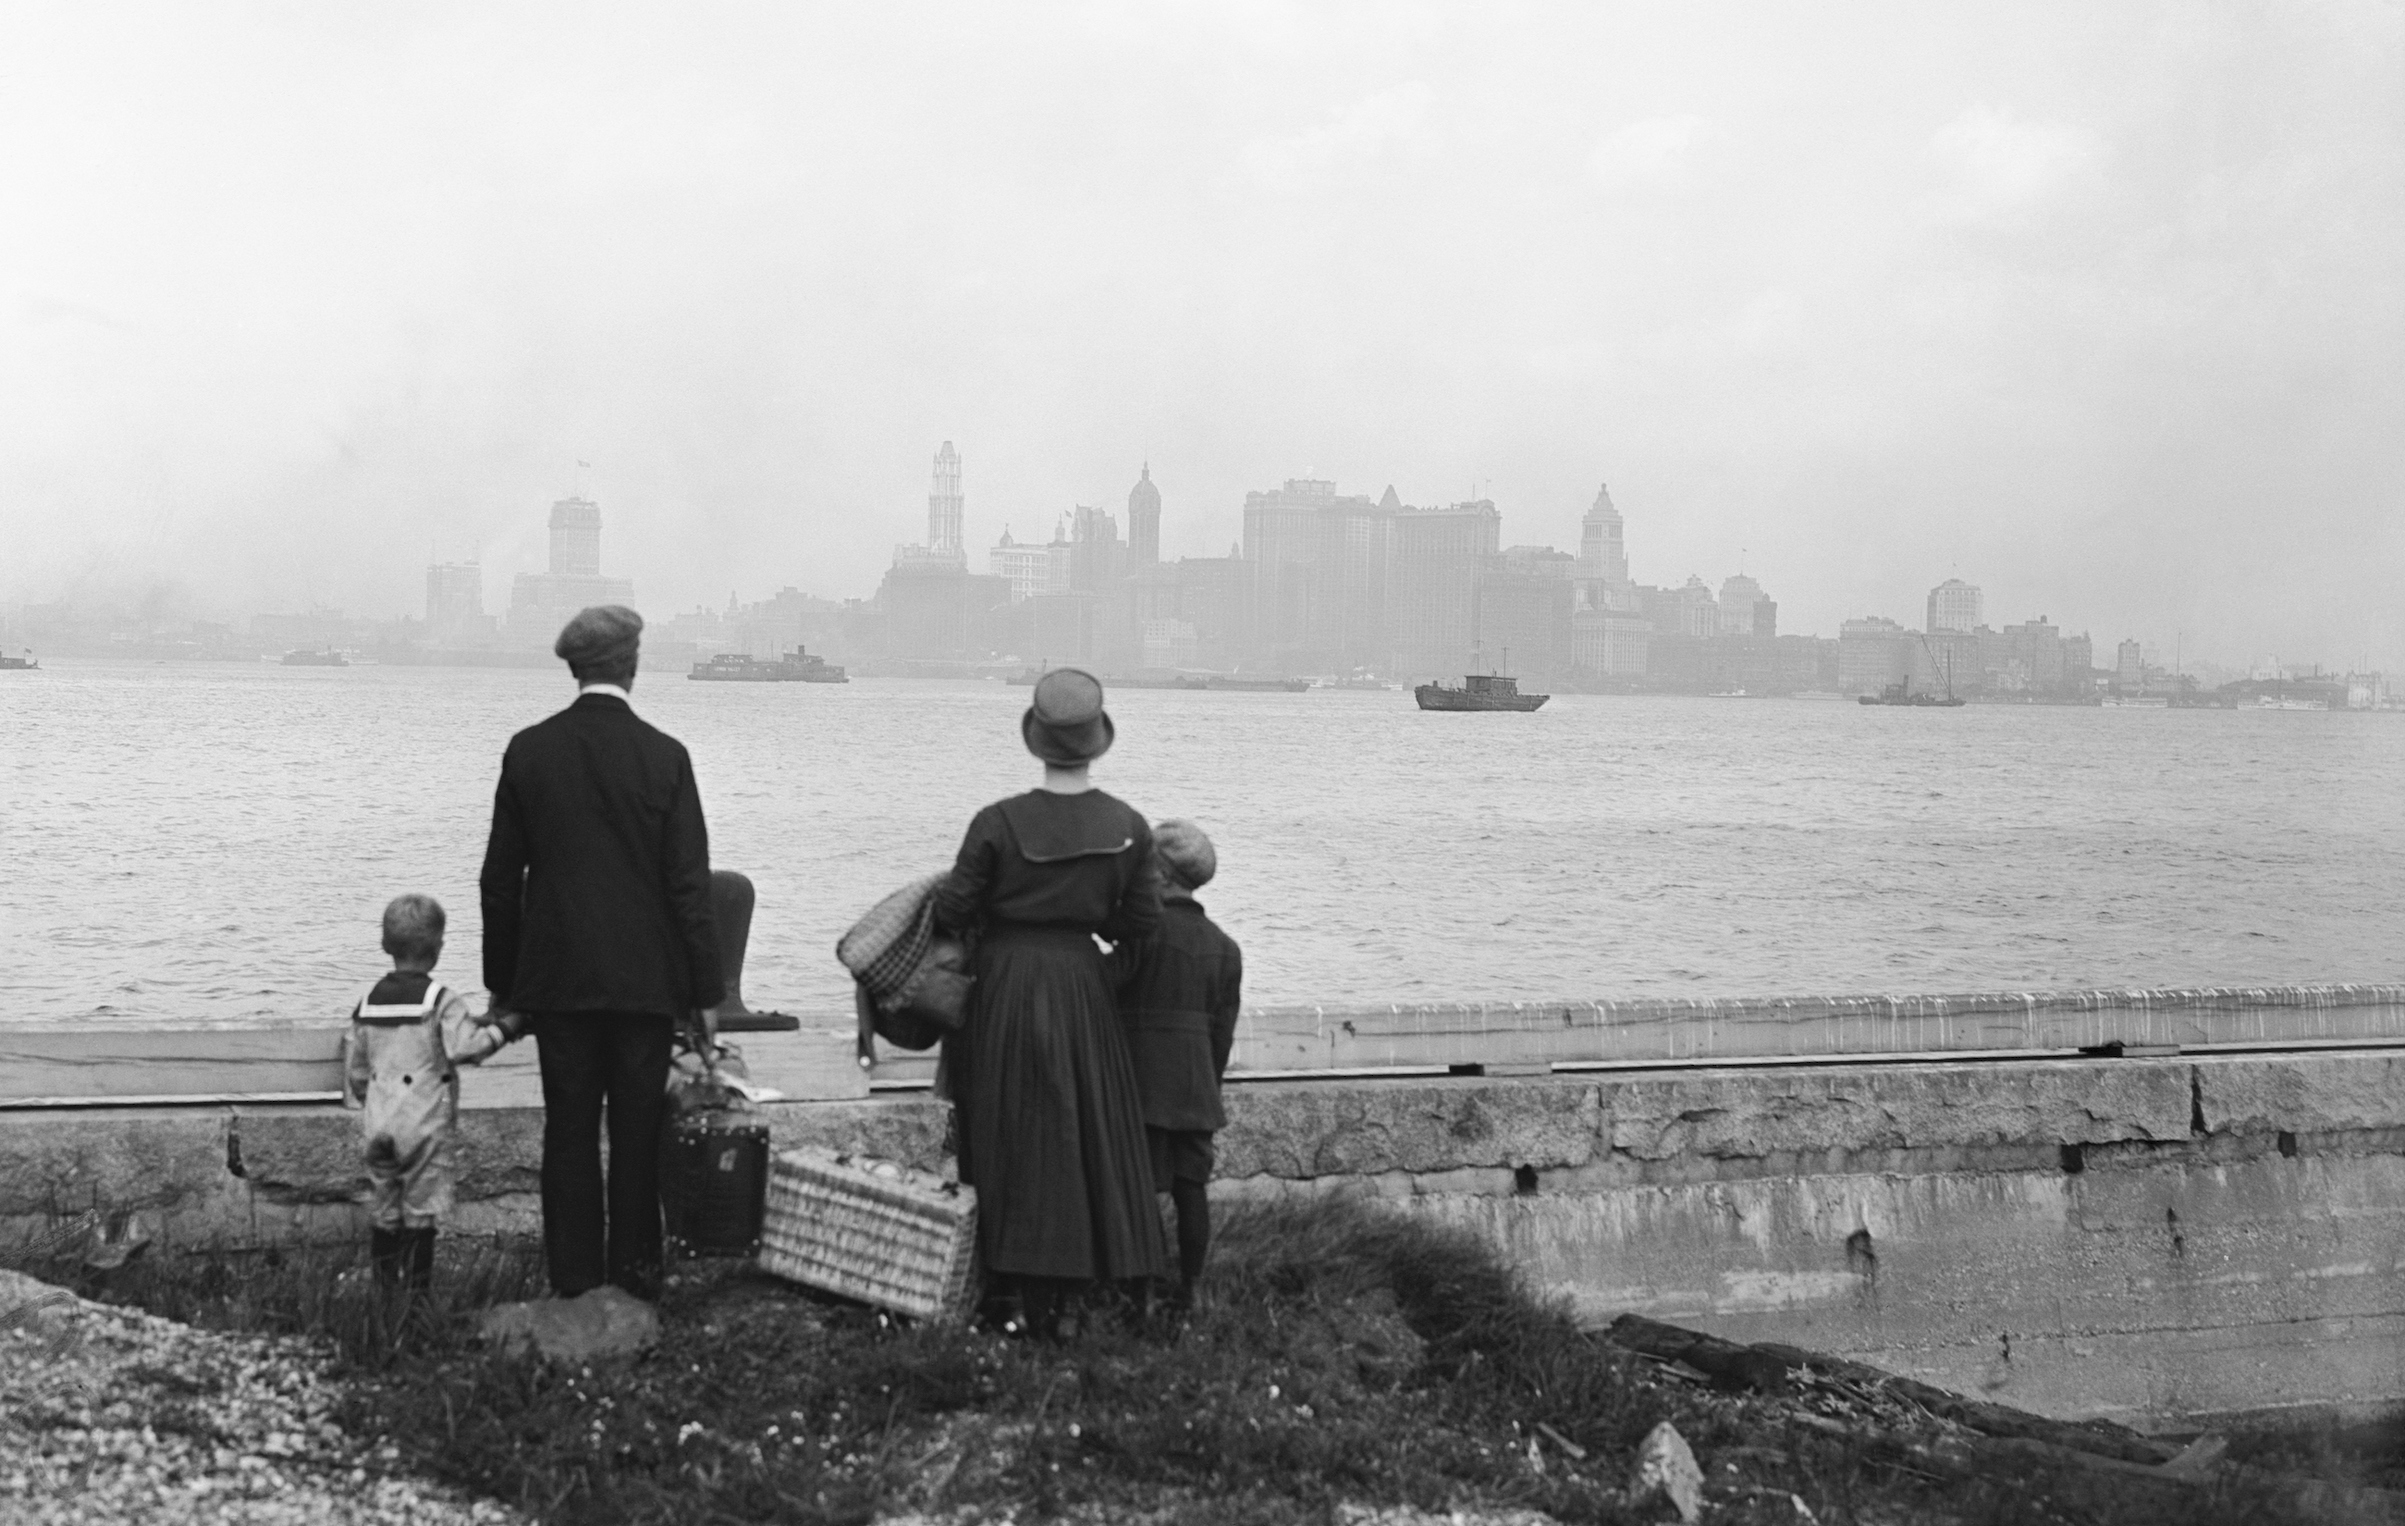 An immigrant family on the dock at Ellis Island, N.Y., looking at New York's skyline while awaiting the ferry to take them there, in 1925.